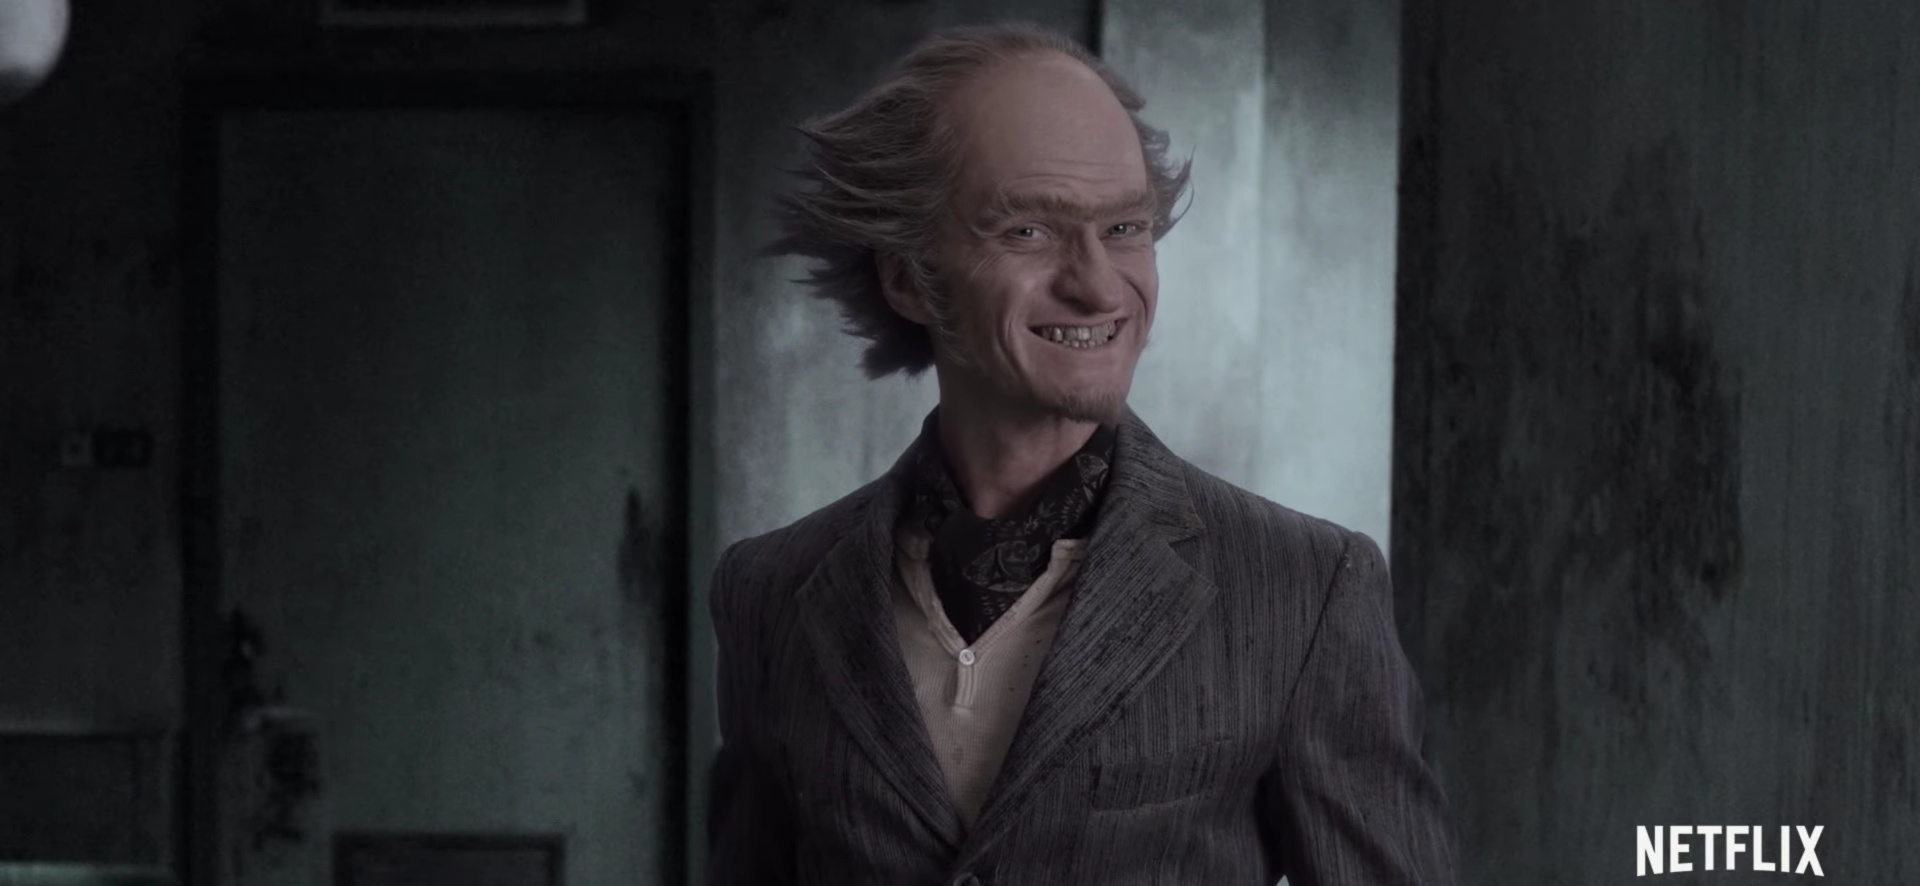 Olaf a series of unfortunate events teaser trailer